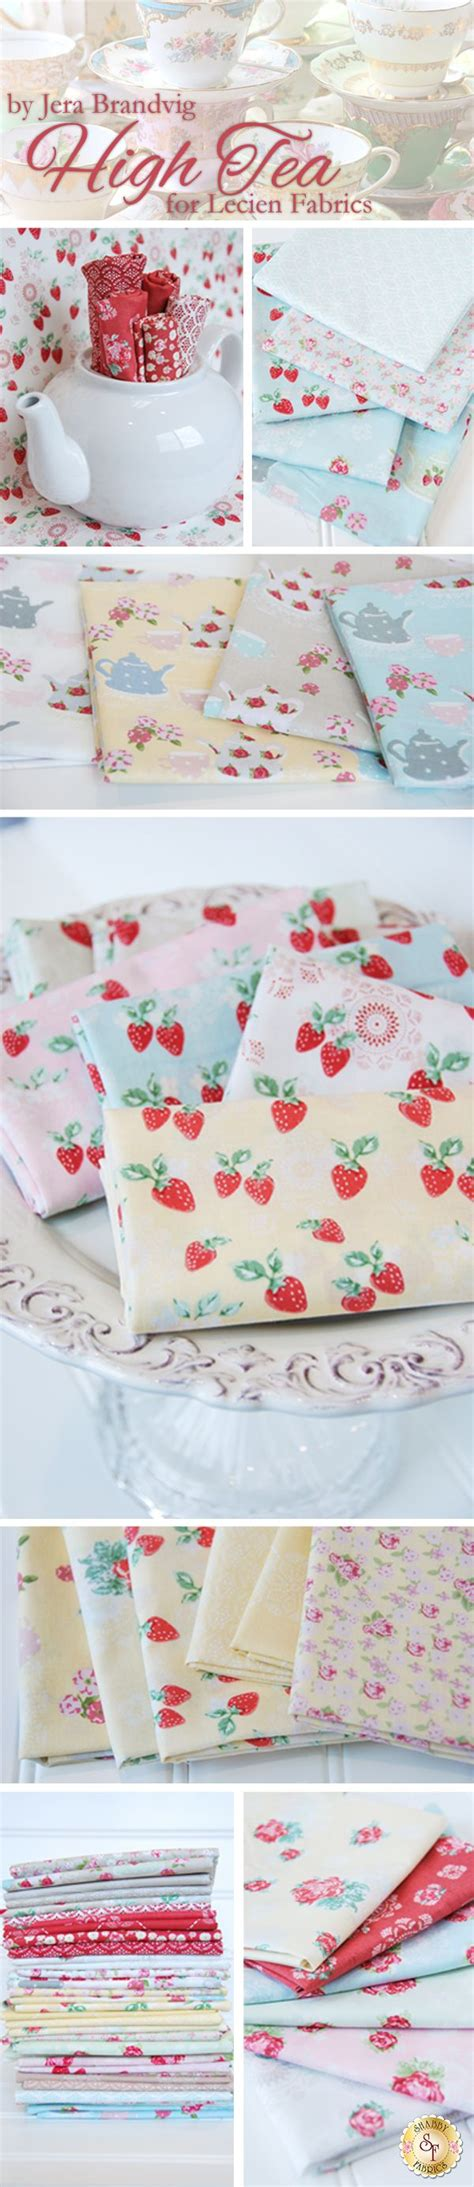 62 best images about lecien fabrics on pinterest fat quarters shabby and rococo